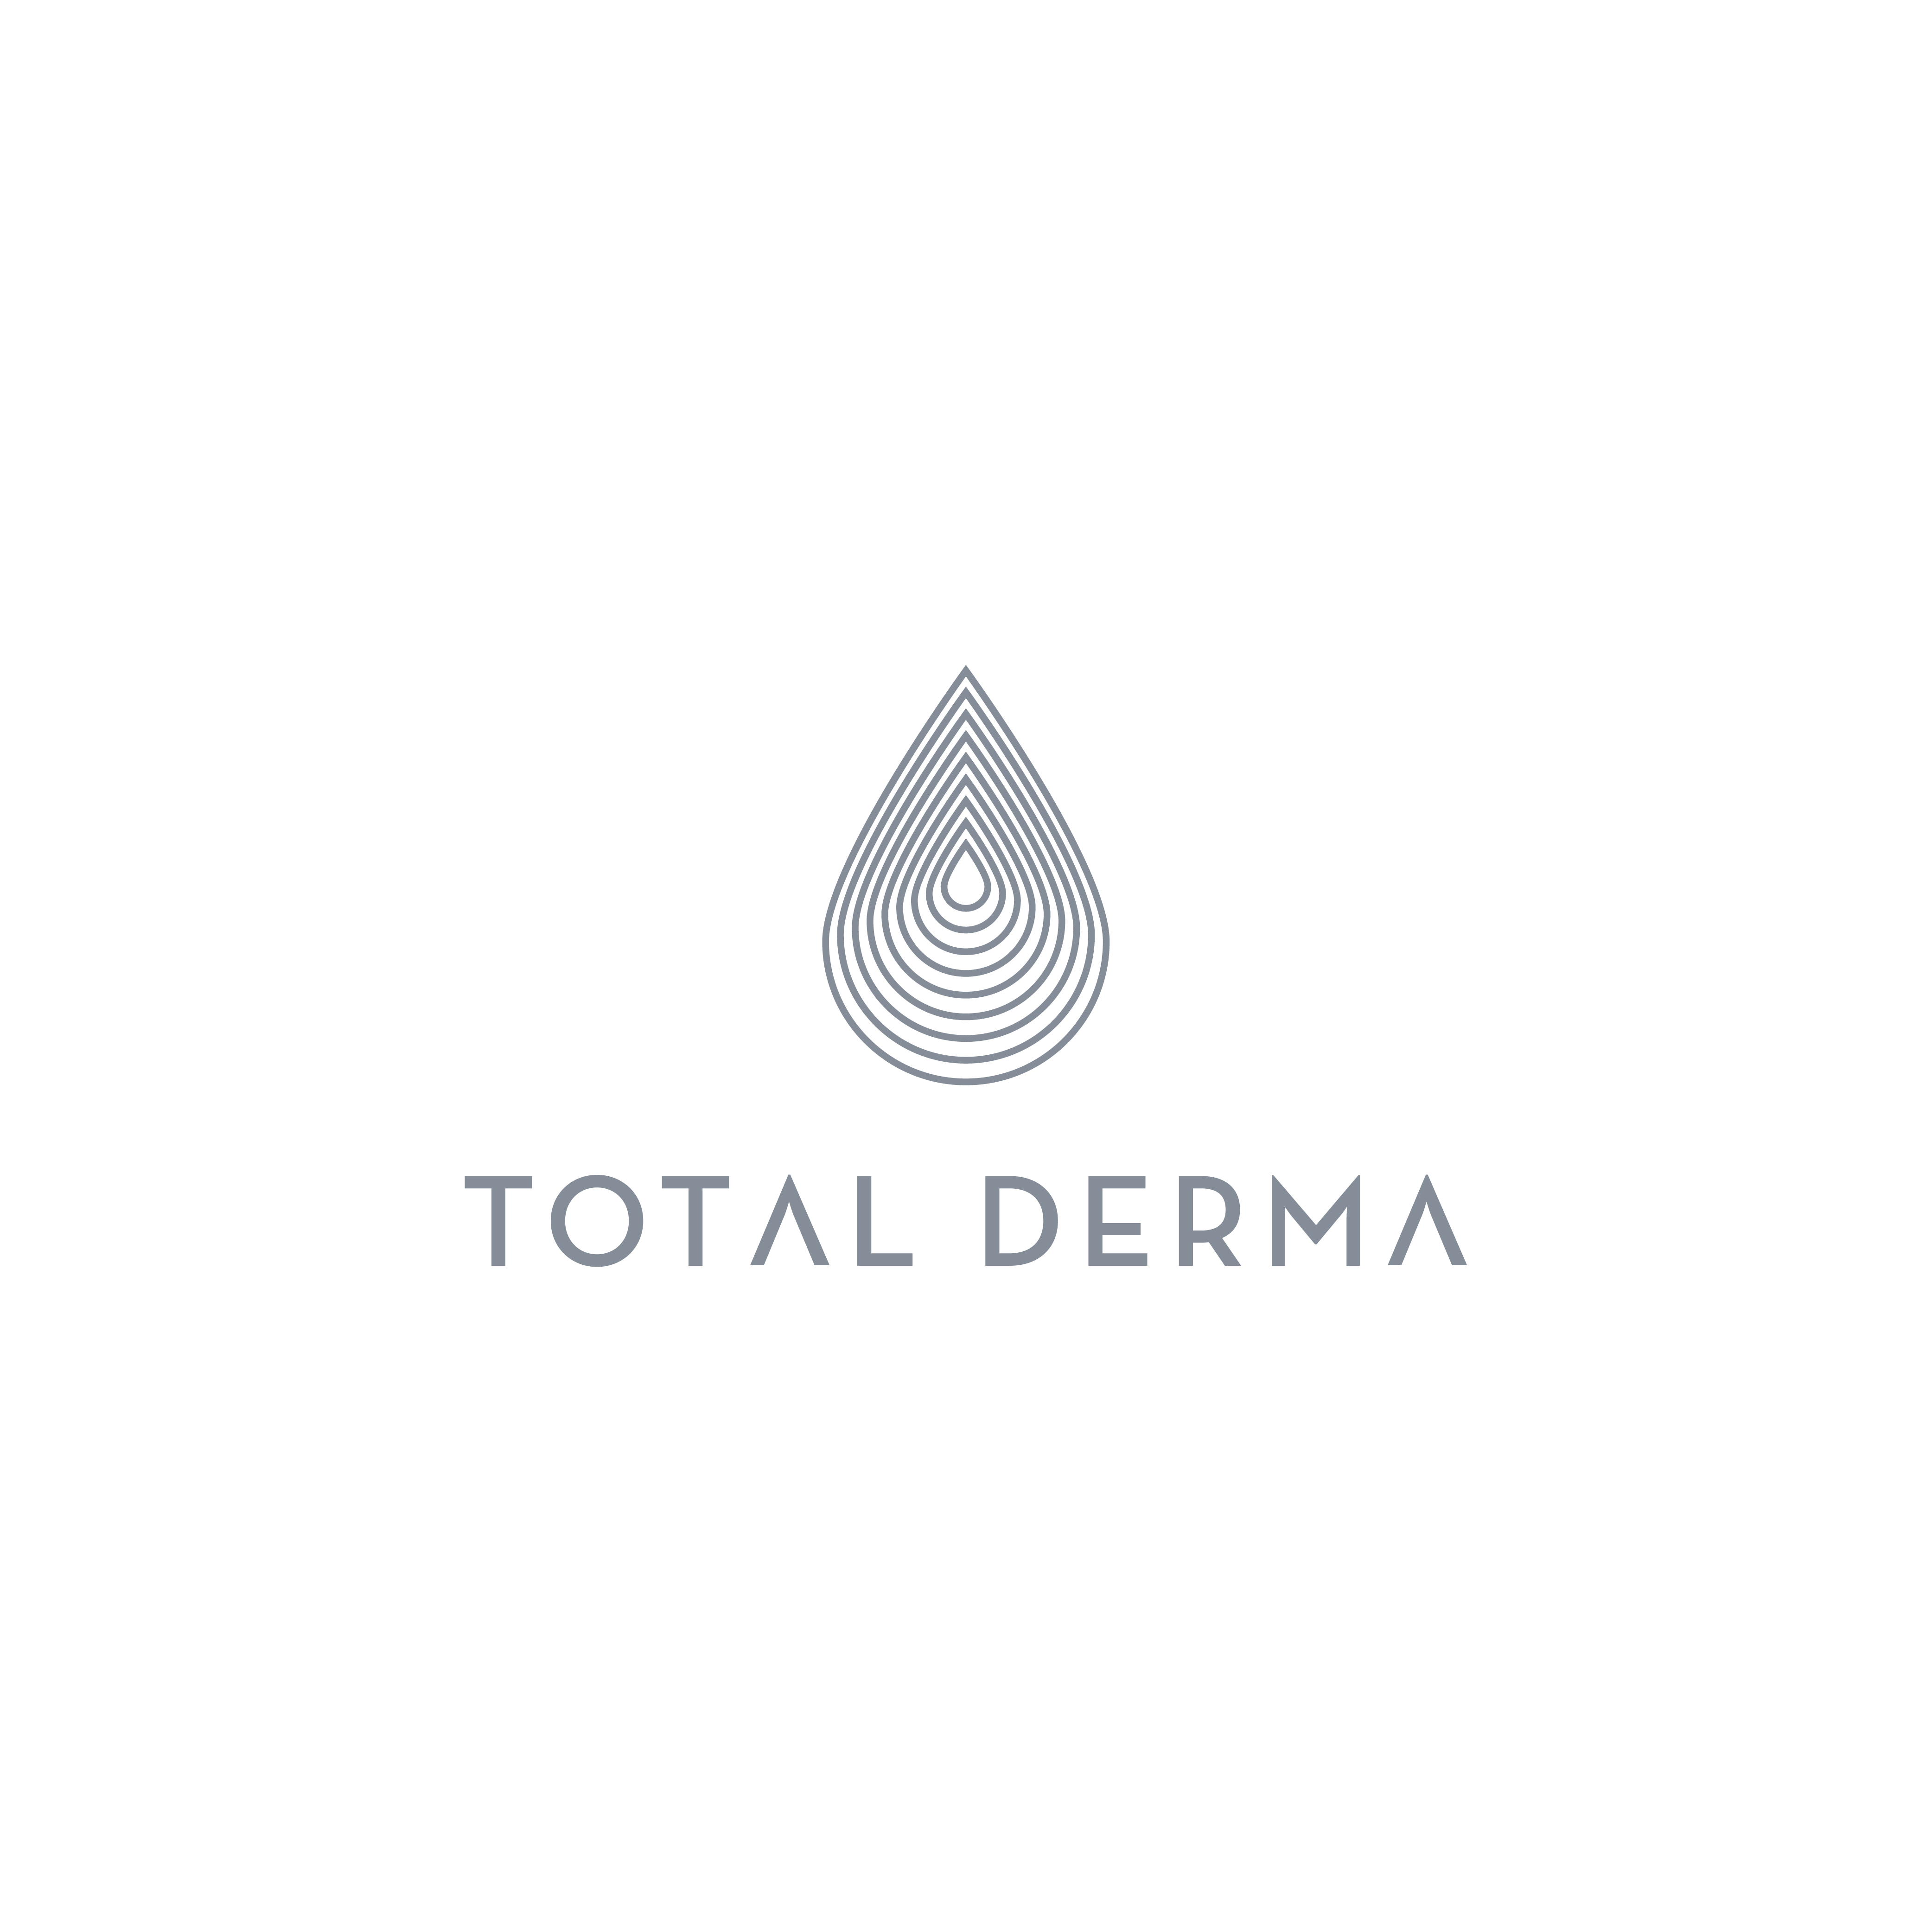 All Natural Skin Care distributor searching for new look